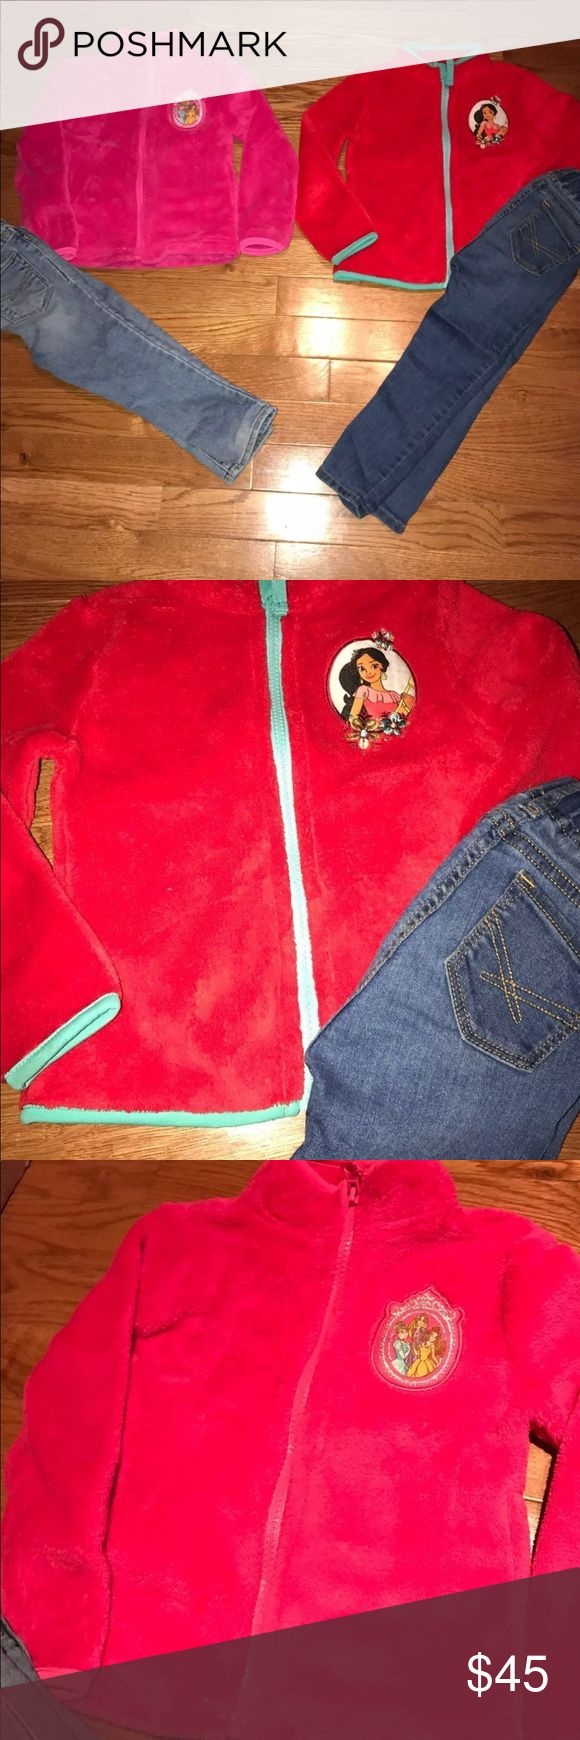 Toddler girls bundle Toddler girls bundle of 2 disney fleece( disney princesses and Elena of avalor) both size 2T. Disney princess fleece has a small tear showed in the photos. Can be sewed other than that in great condition. Also includes 2 gap jeans size 2 also in good condition Disney Jackets & Coats